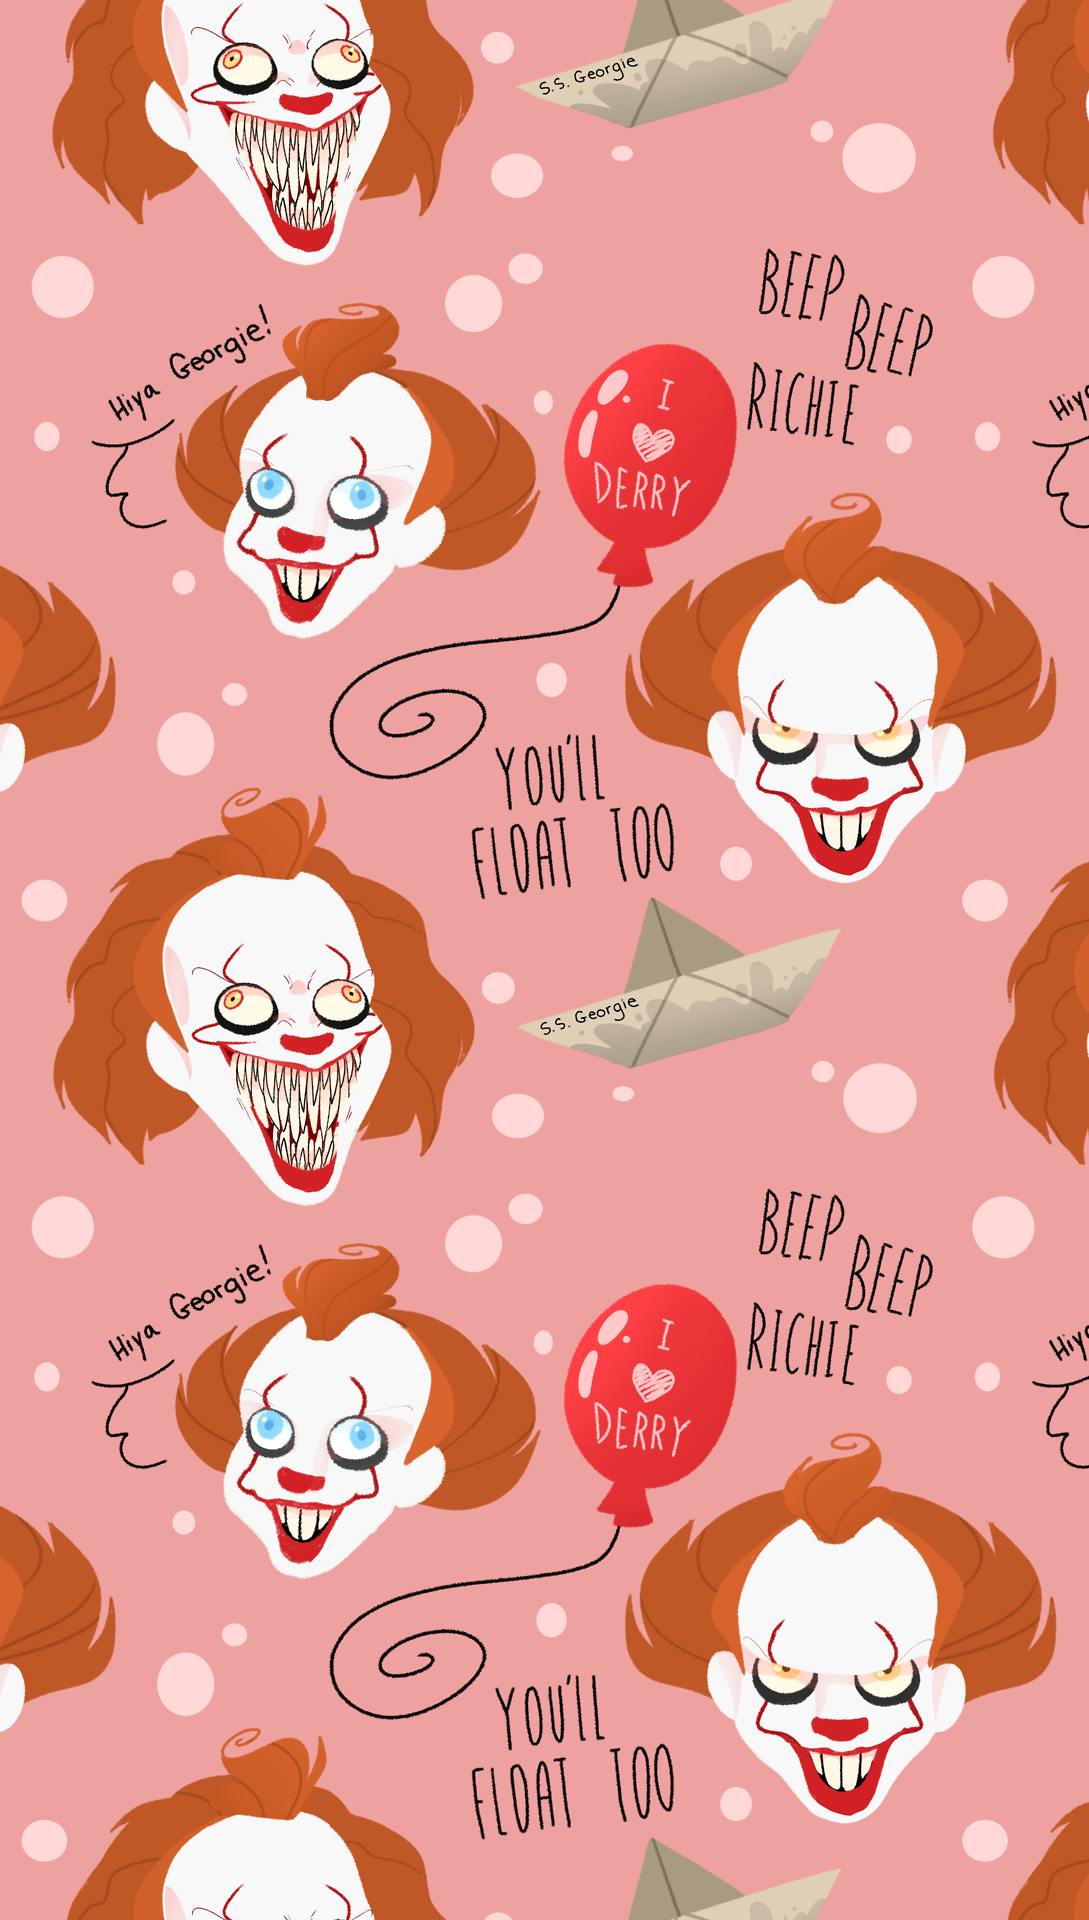 Drew Some Pennywise Tiled Background For Your Tumblr Page Free To Use Credit Me P Imagem De Fundo Para Iphone Papeis De Parede Para Iphone Wallpapers Bonitos